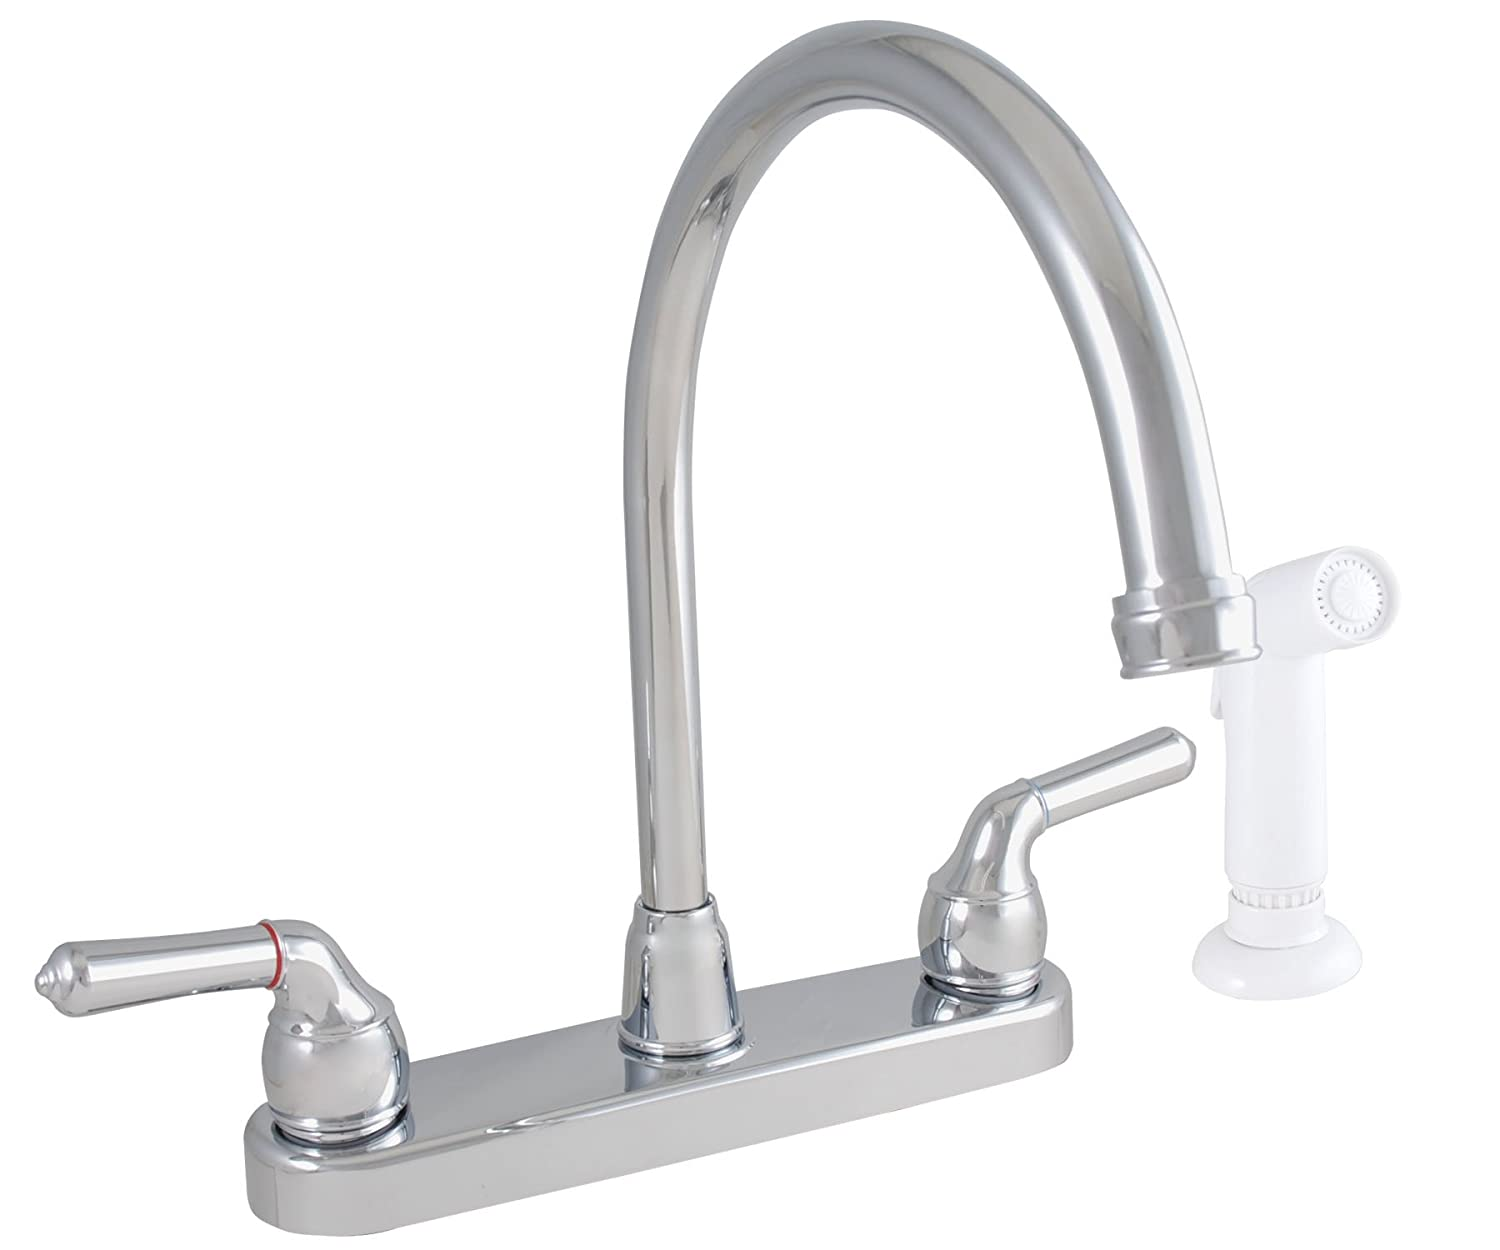 LDR 952 36425SS Exquisite Kitchen Faucet, Gooseneck Spout, Dual ...